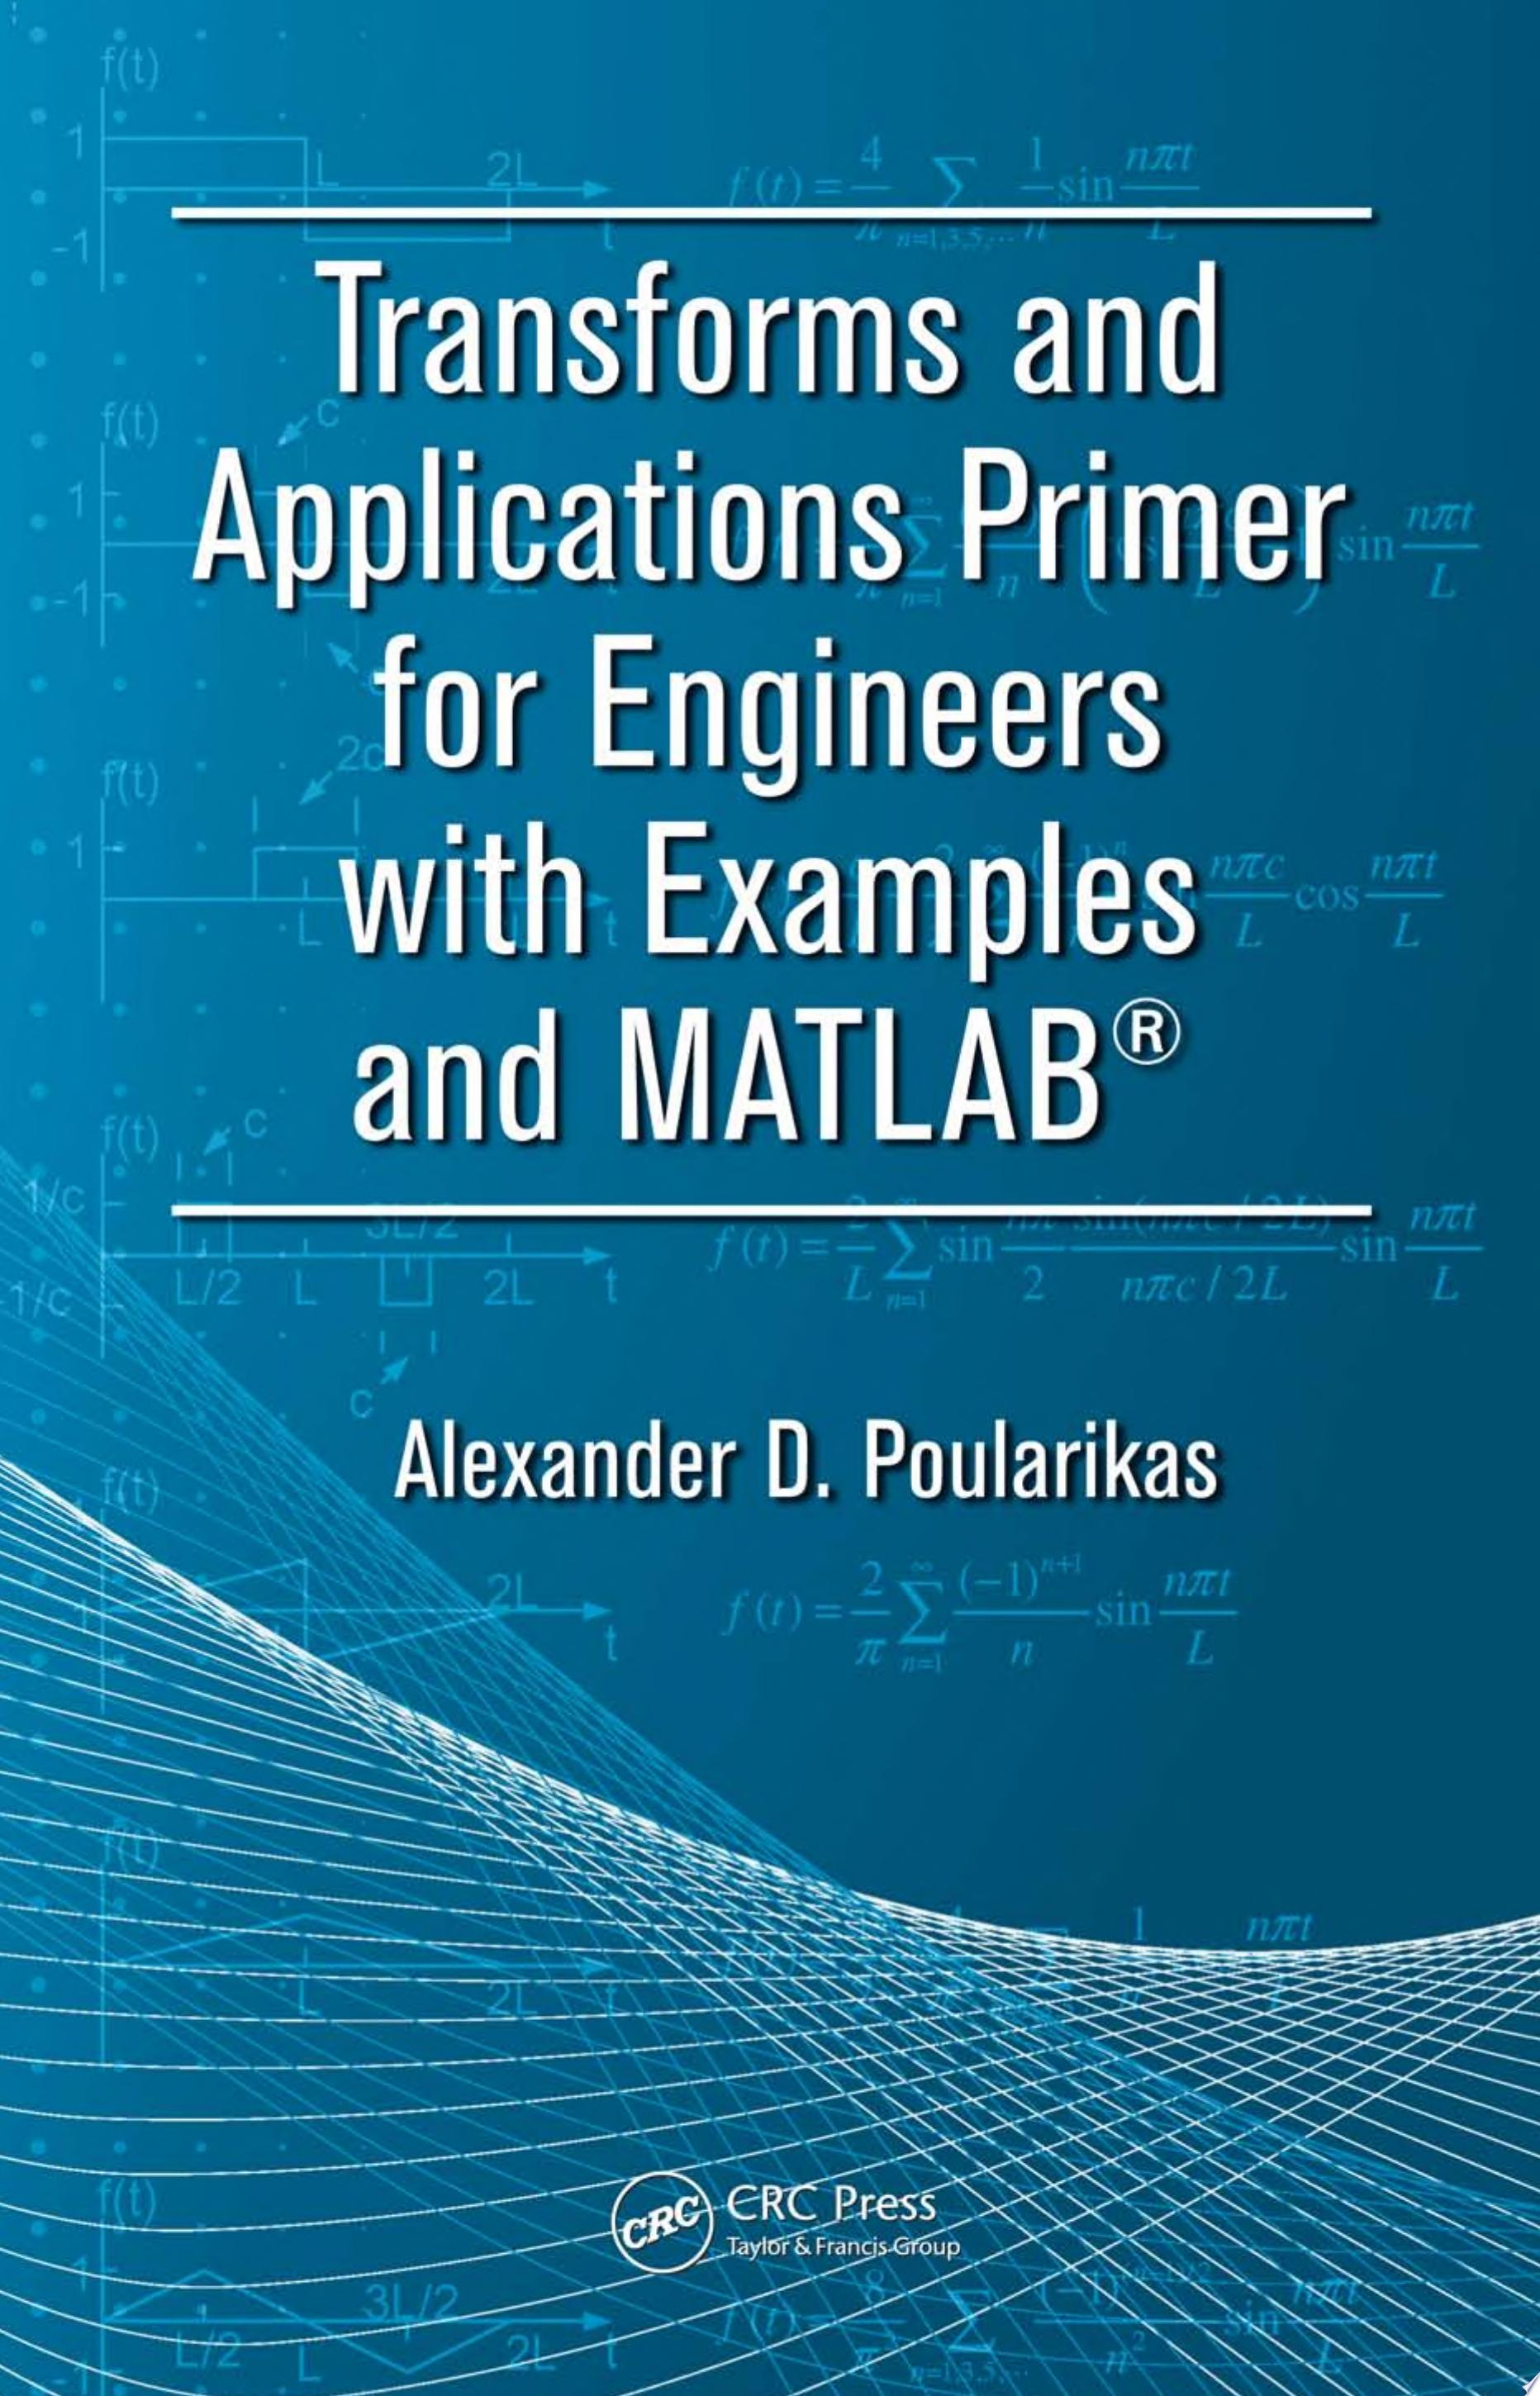 Transforms and Applications Primer for Engineers with Examples and MATLAB